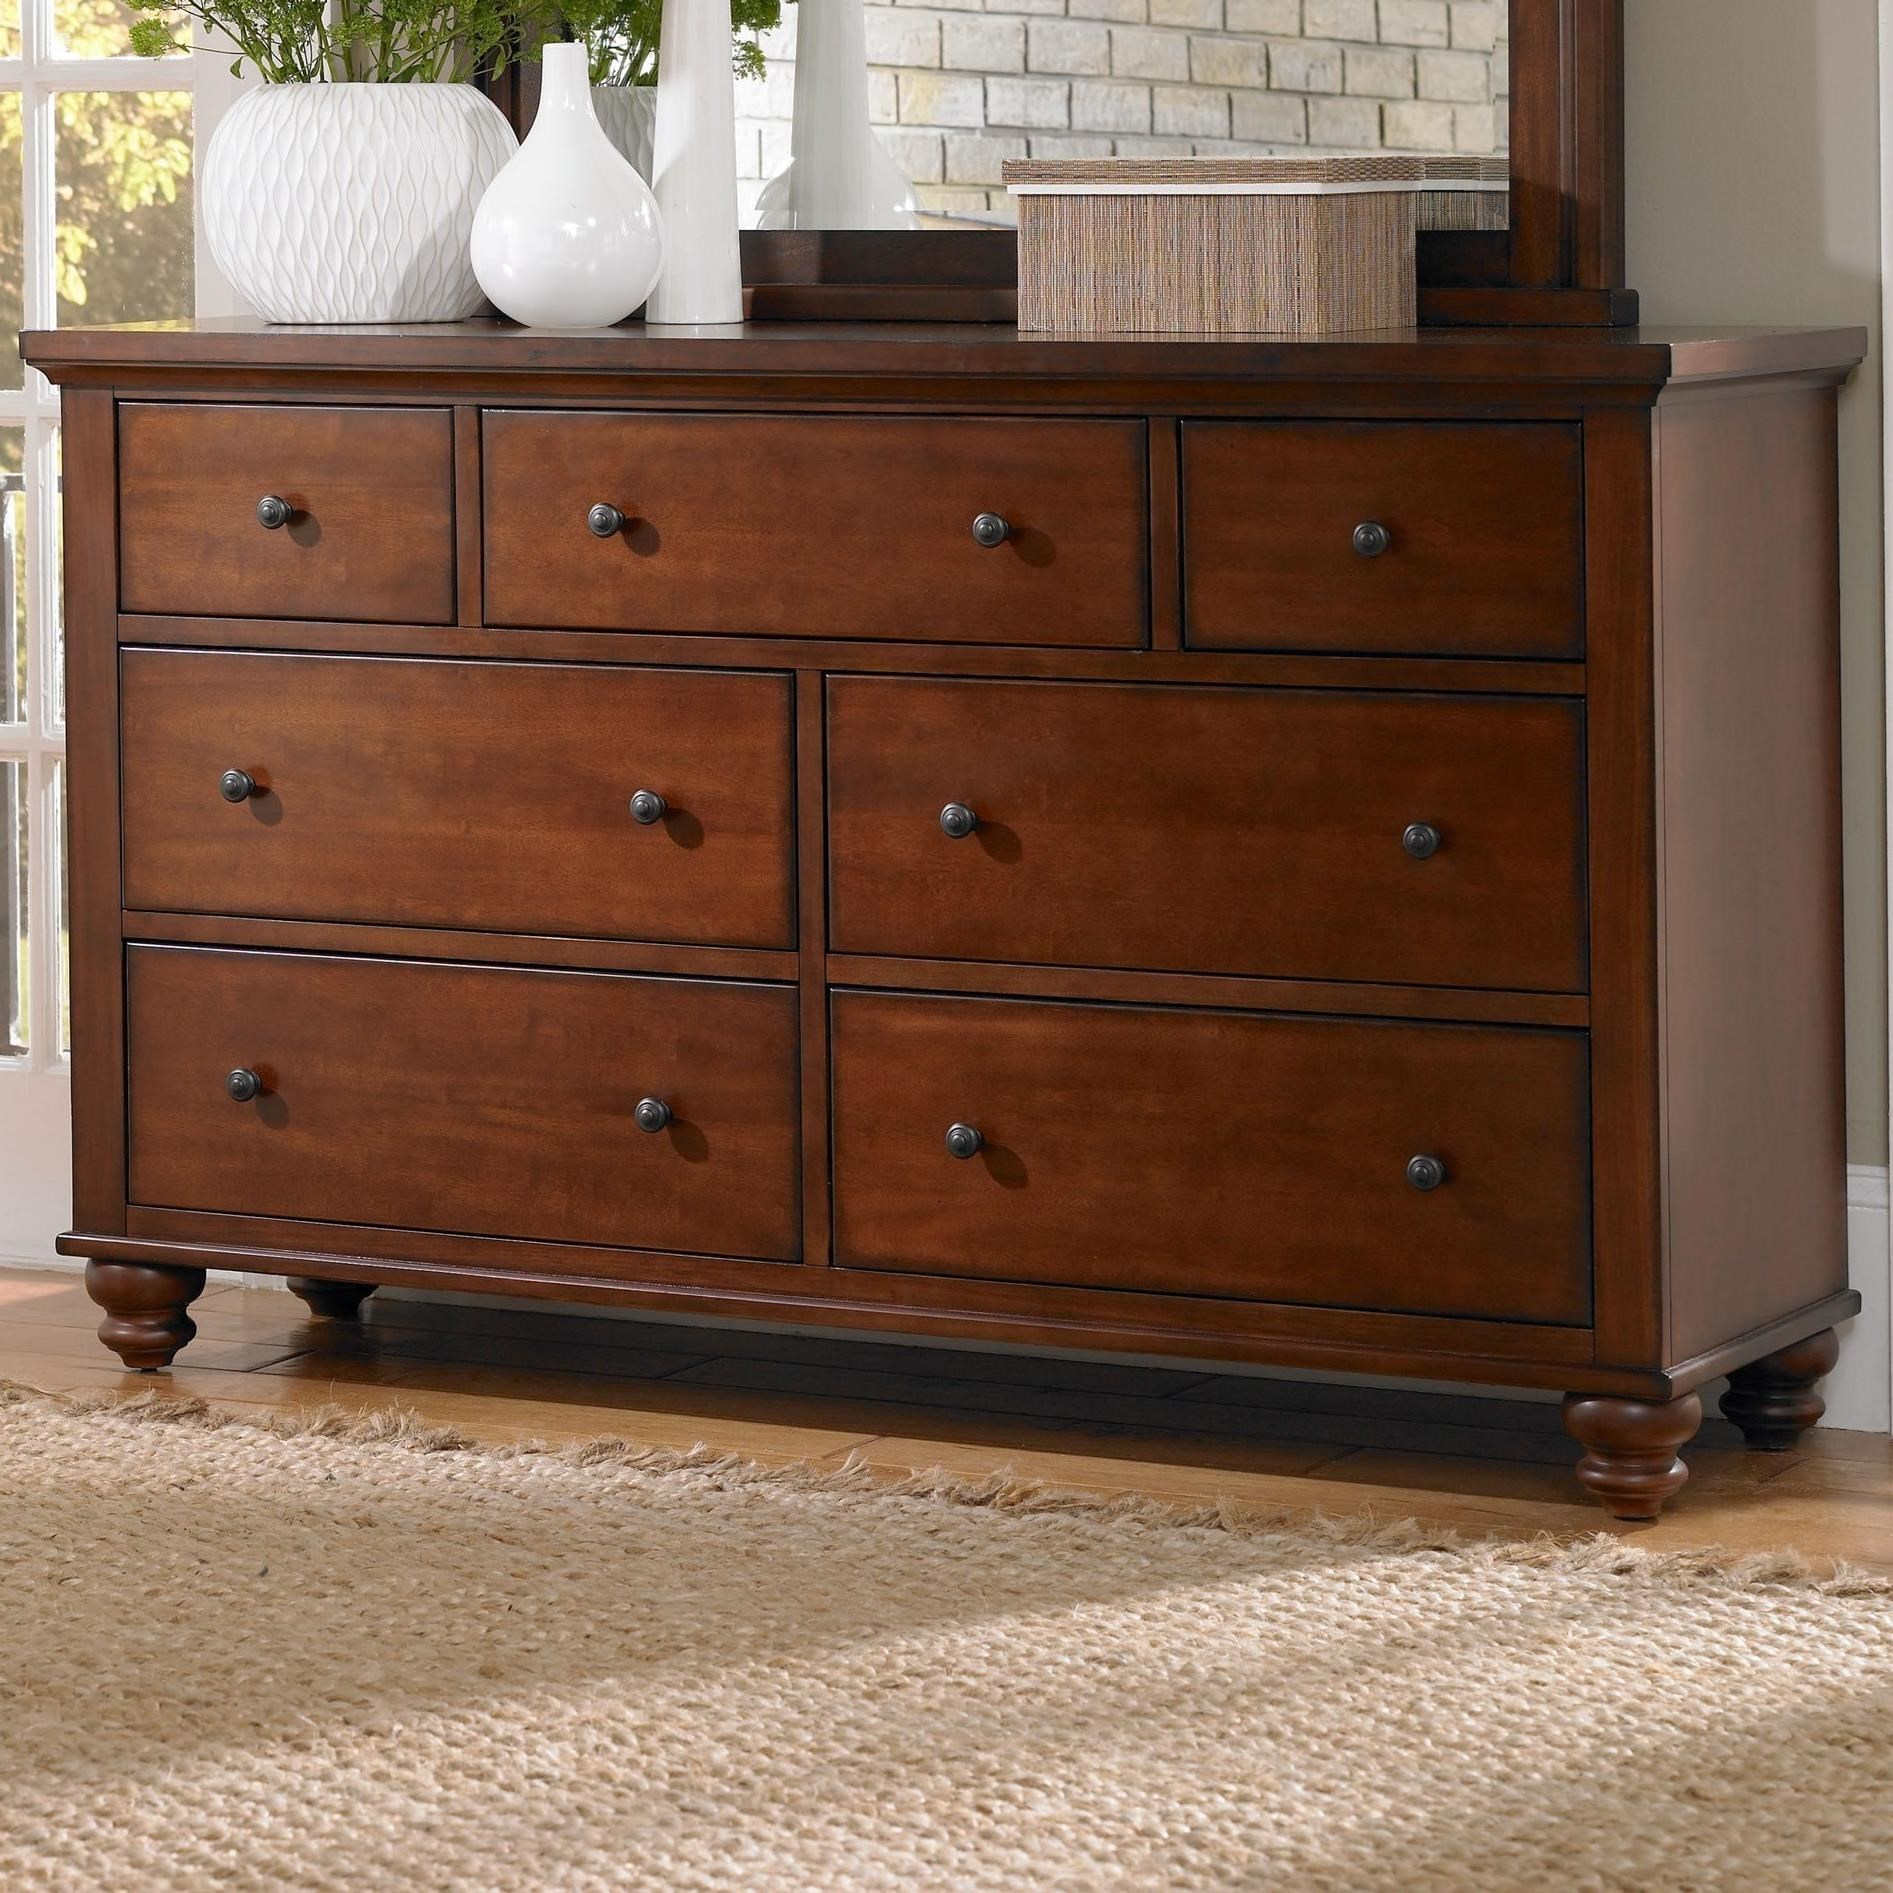 7 Drawer Double Dresser with Turned Feet